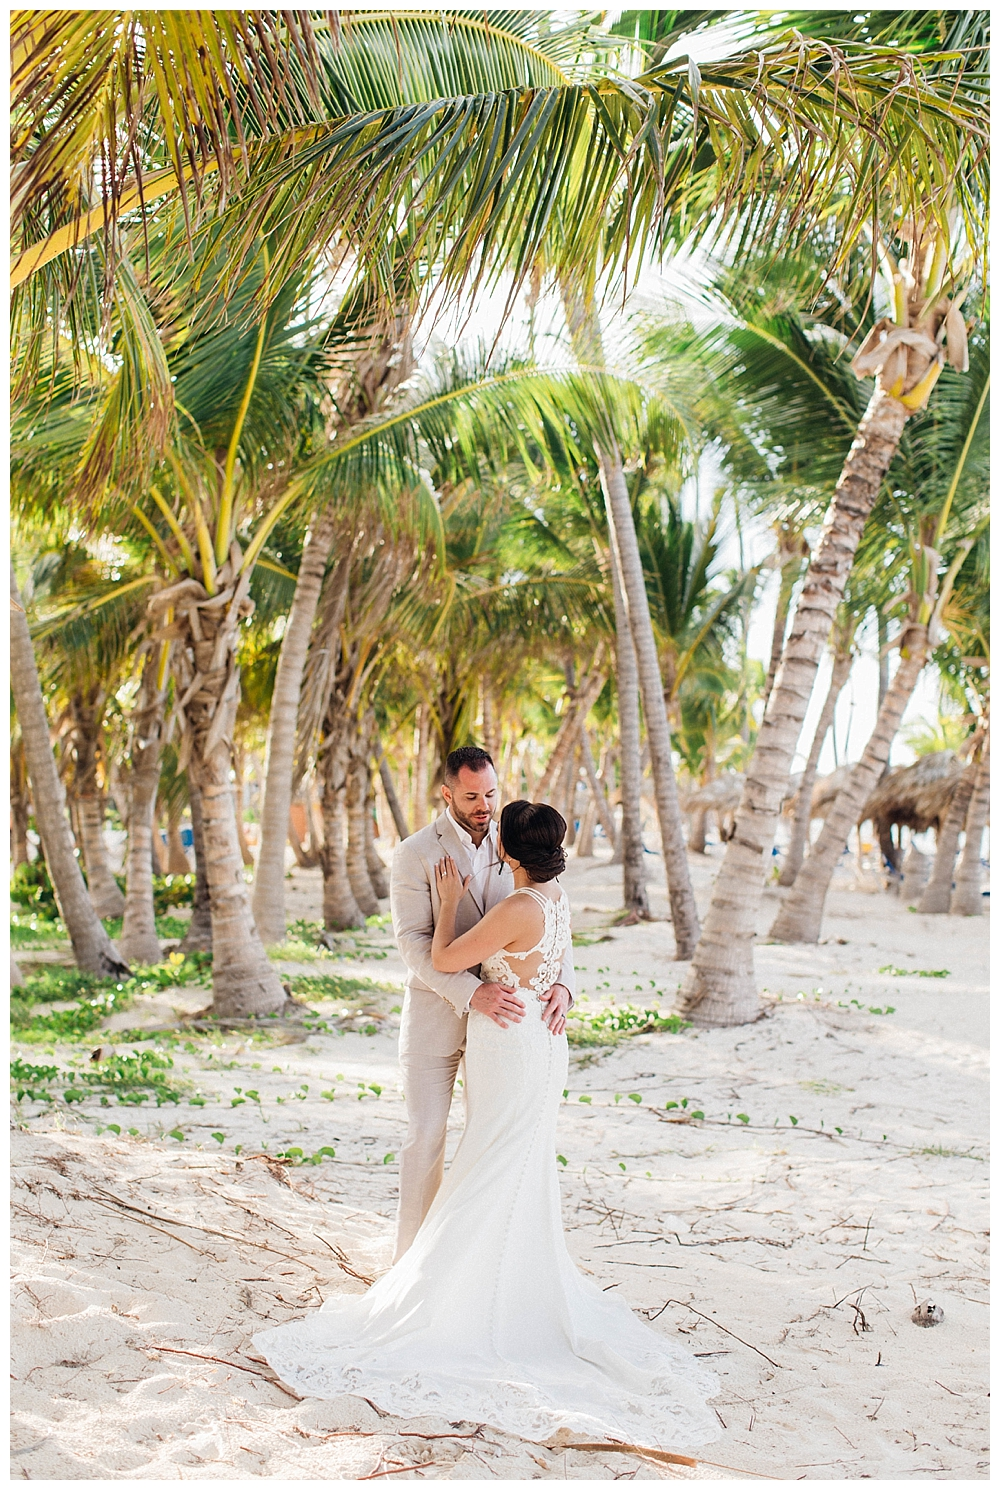 christinakarstphotography_dominicanrepublicwedding-213.jpg